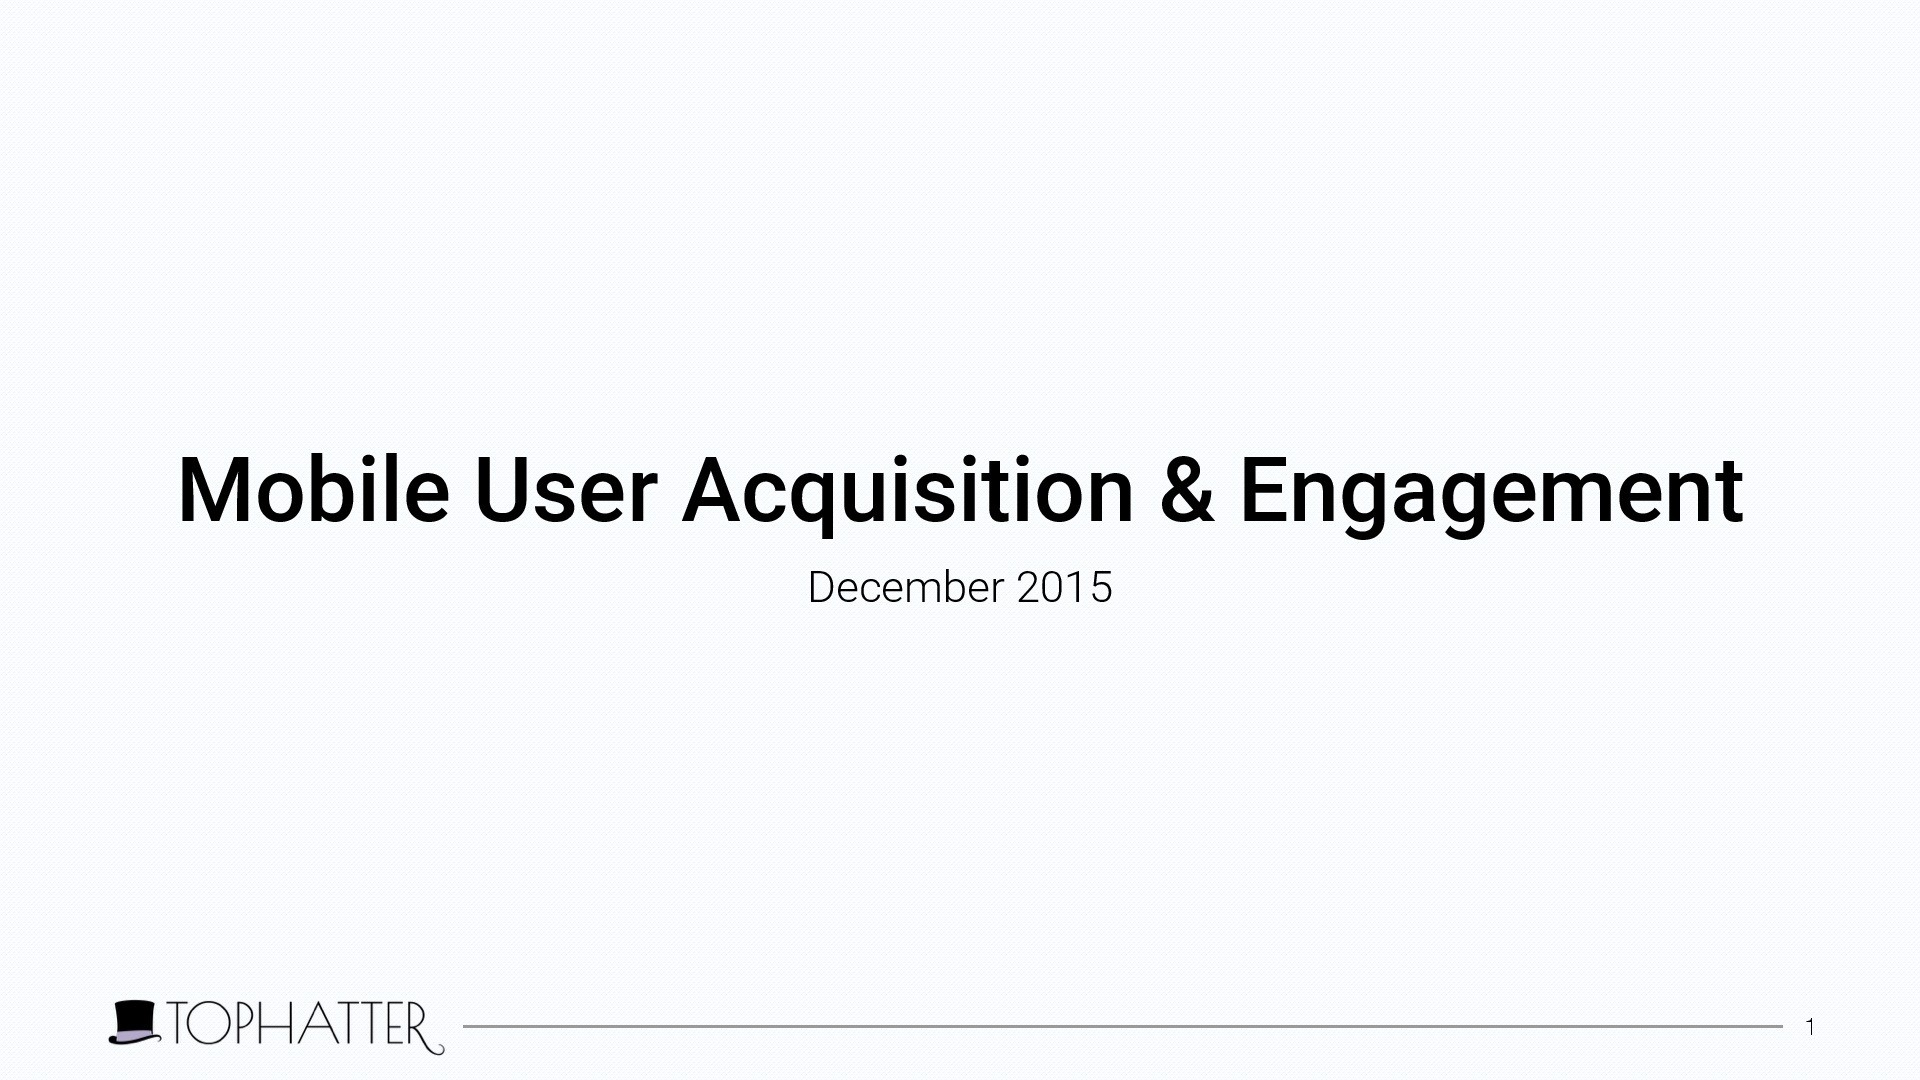 Mobile User Acquisition: Attracting & Engaging Mobile Consumers